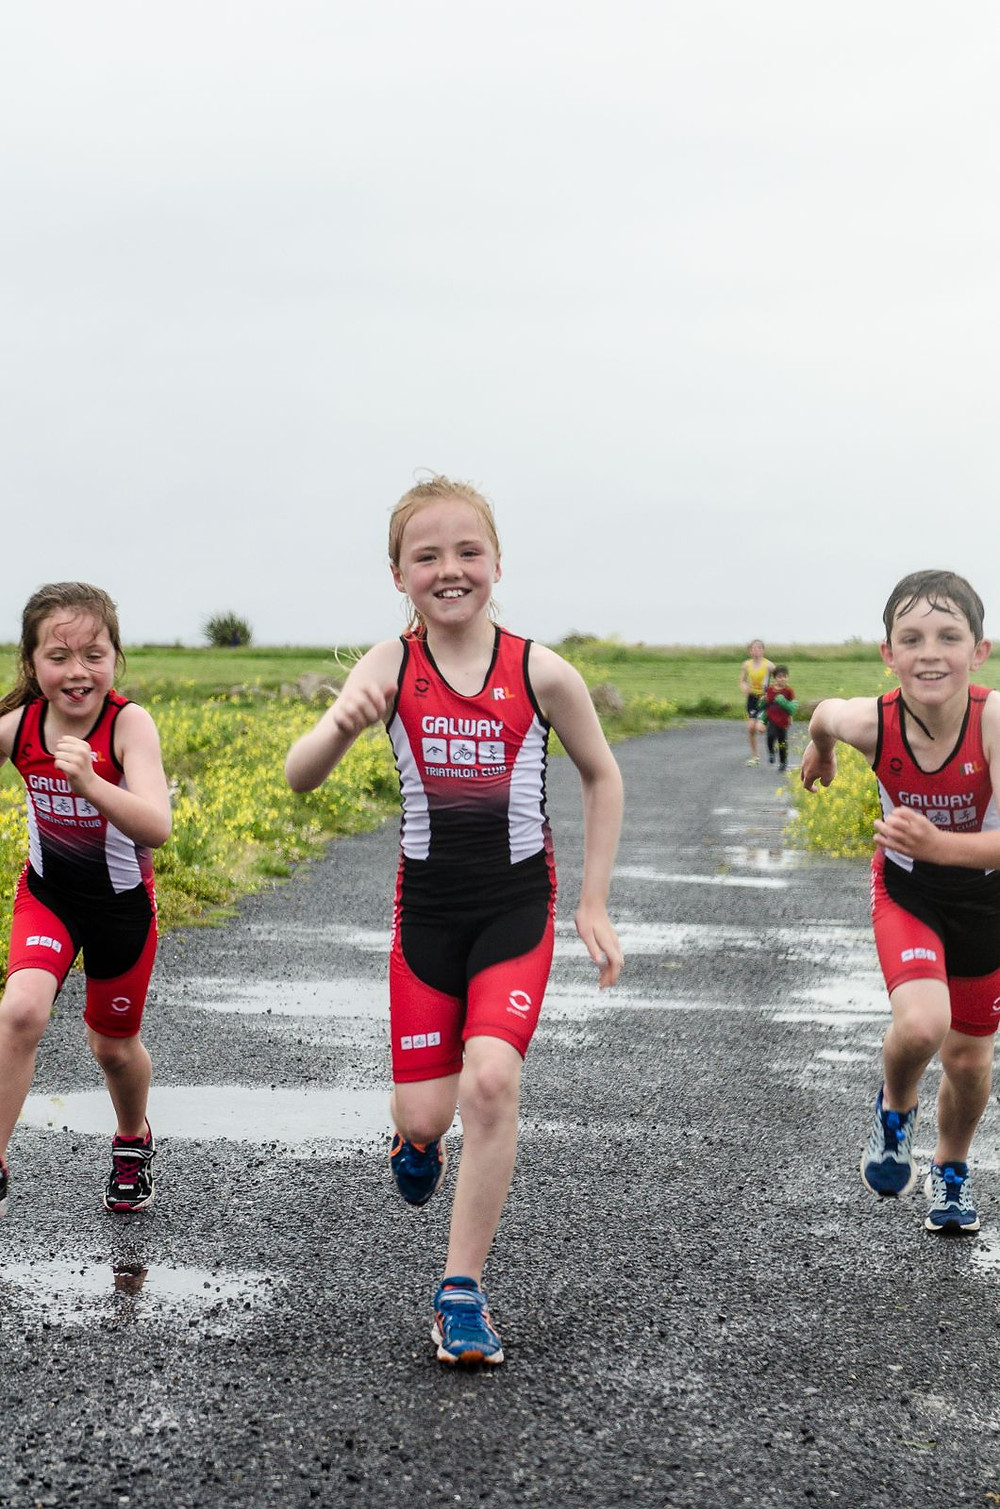 Heather Loomes, Caoimhe Loomes and Dylan Cassidy testing their new triathlon gear at the launch of the GTC Junior Section last night Photo Credit Michal Dzikowski.jpg